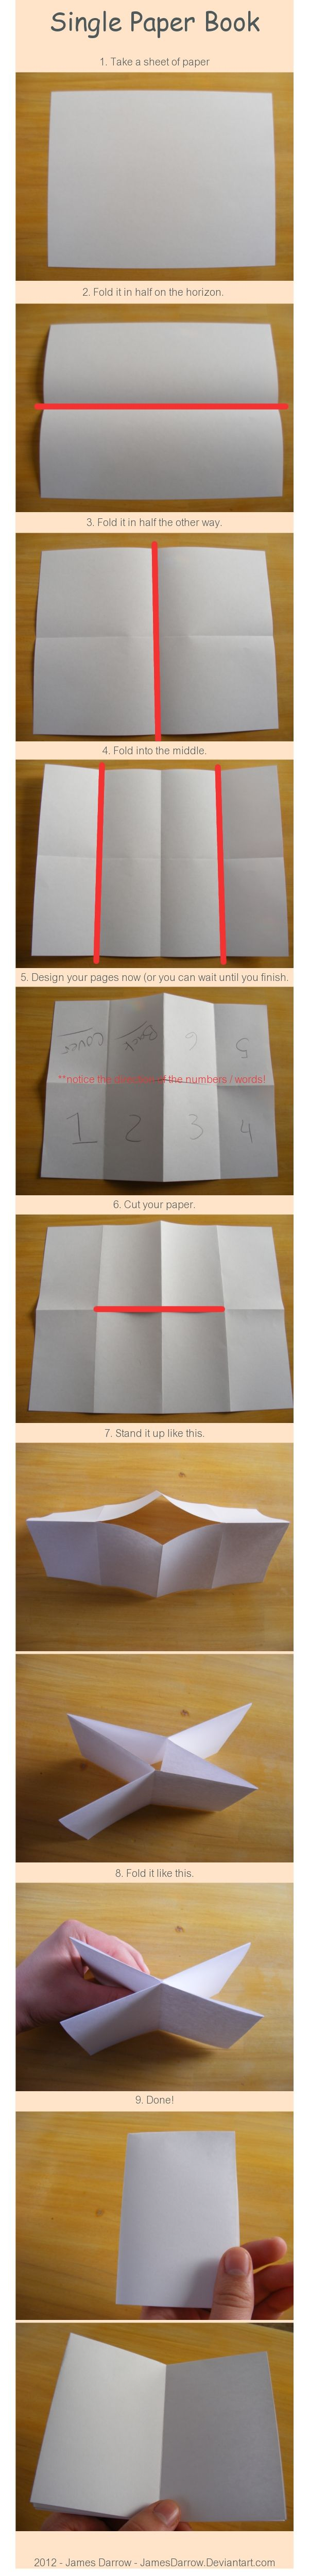 Booklet Instructions